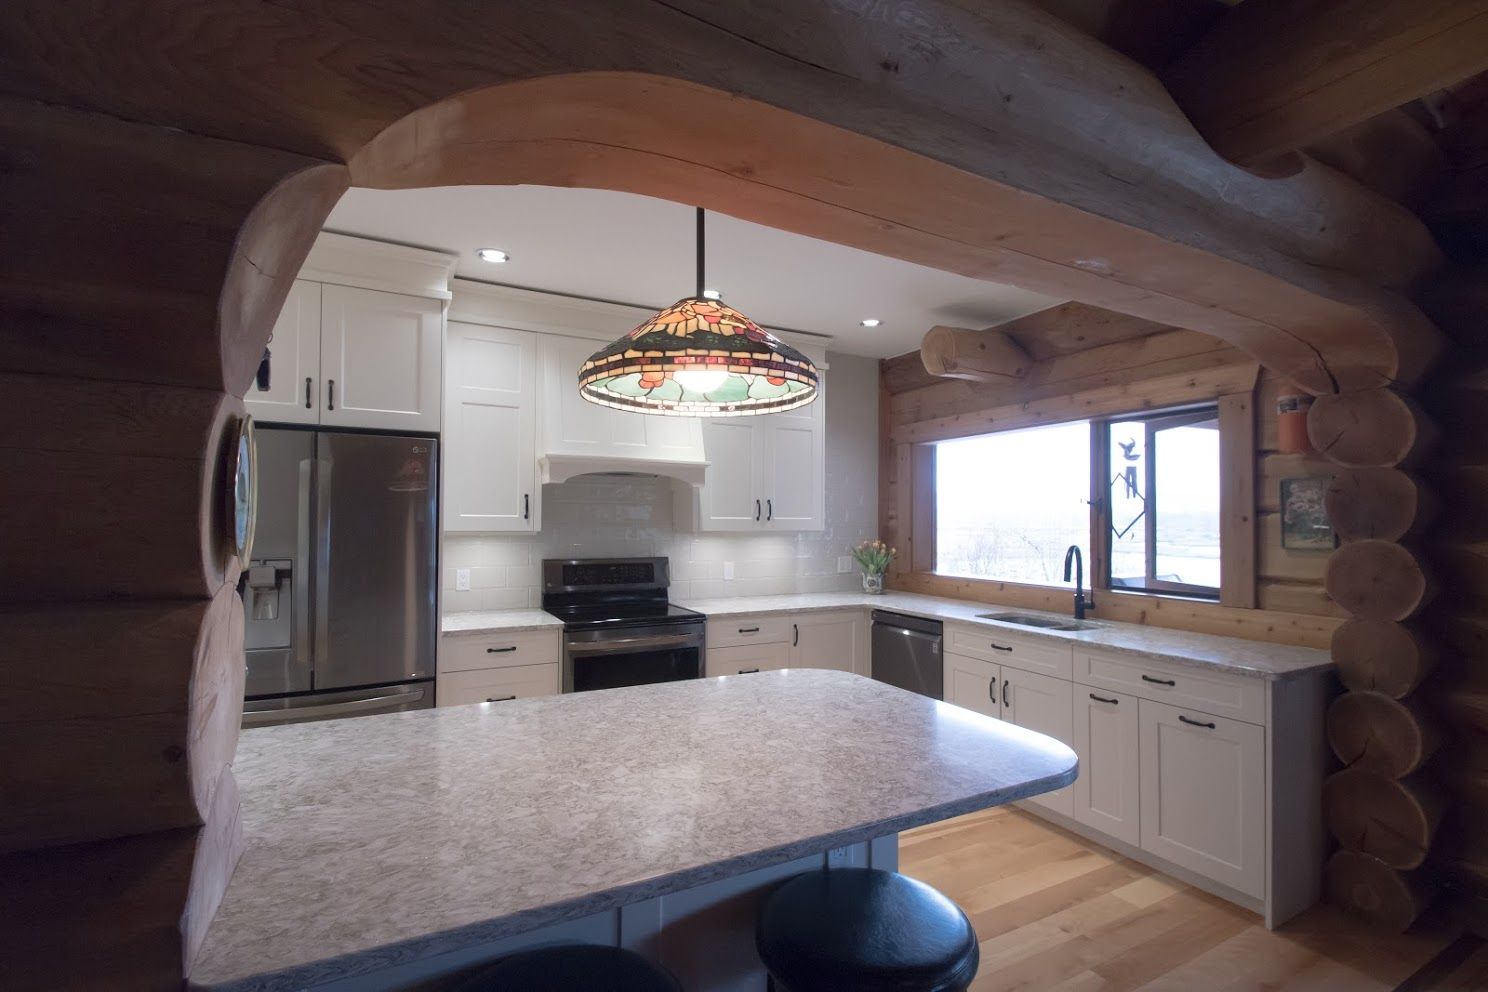 Rose Whittaker - (Client)Project Date: August 2018, Project Price: $10,000 - $49,999We commissioned Jen and her crew to do a complete kitchen Reno. I asked for ideas and she came up with plans for an absolutely beautiful kitchen. She was a delight to work with and her attention to detail was really impressive. She was always available to answer questions and come up with suggestions whenever asked. I love my new kitchen and I would recommend Jen to anyone contemplating a new kitchen. Also, my cabinets are beautiful and the installers did an excellent job.